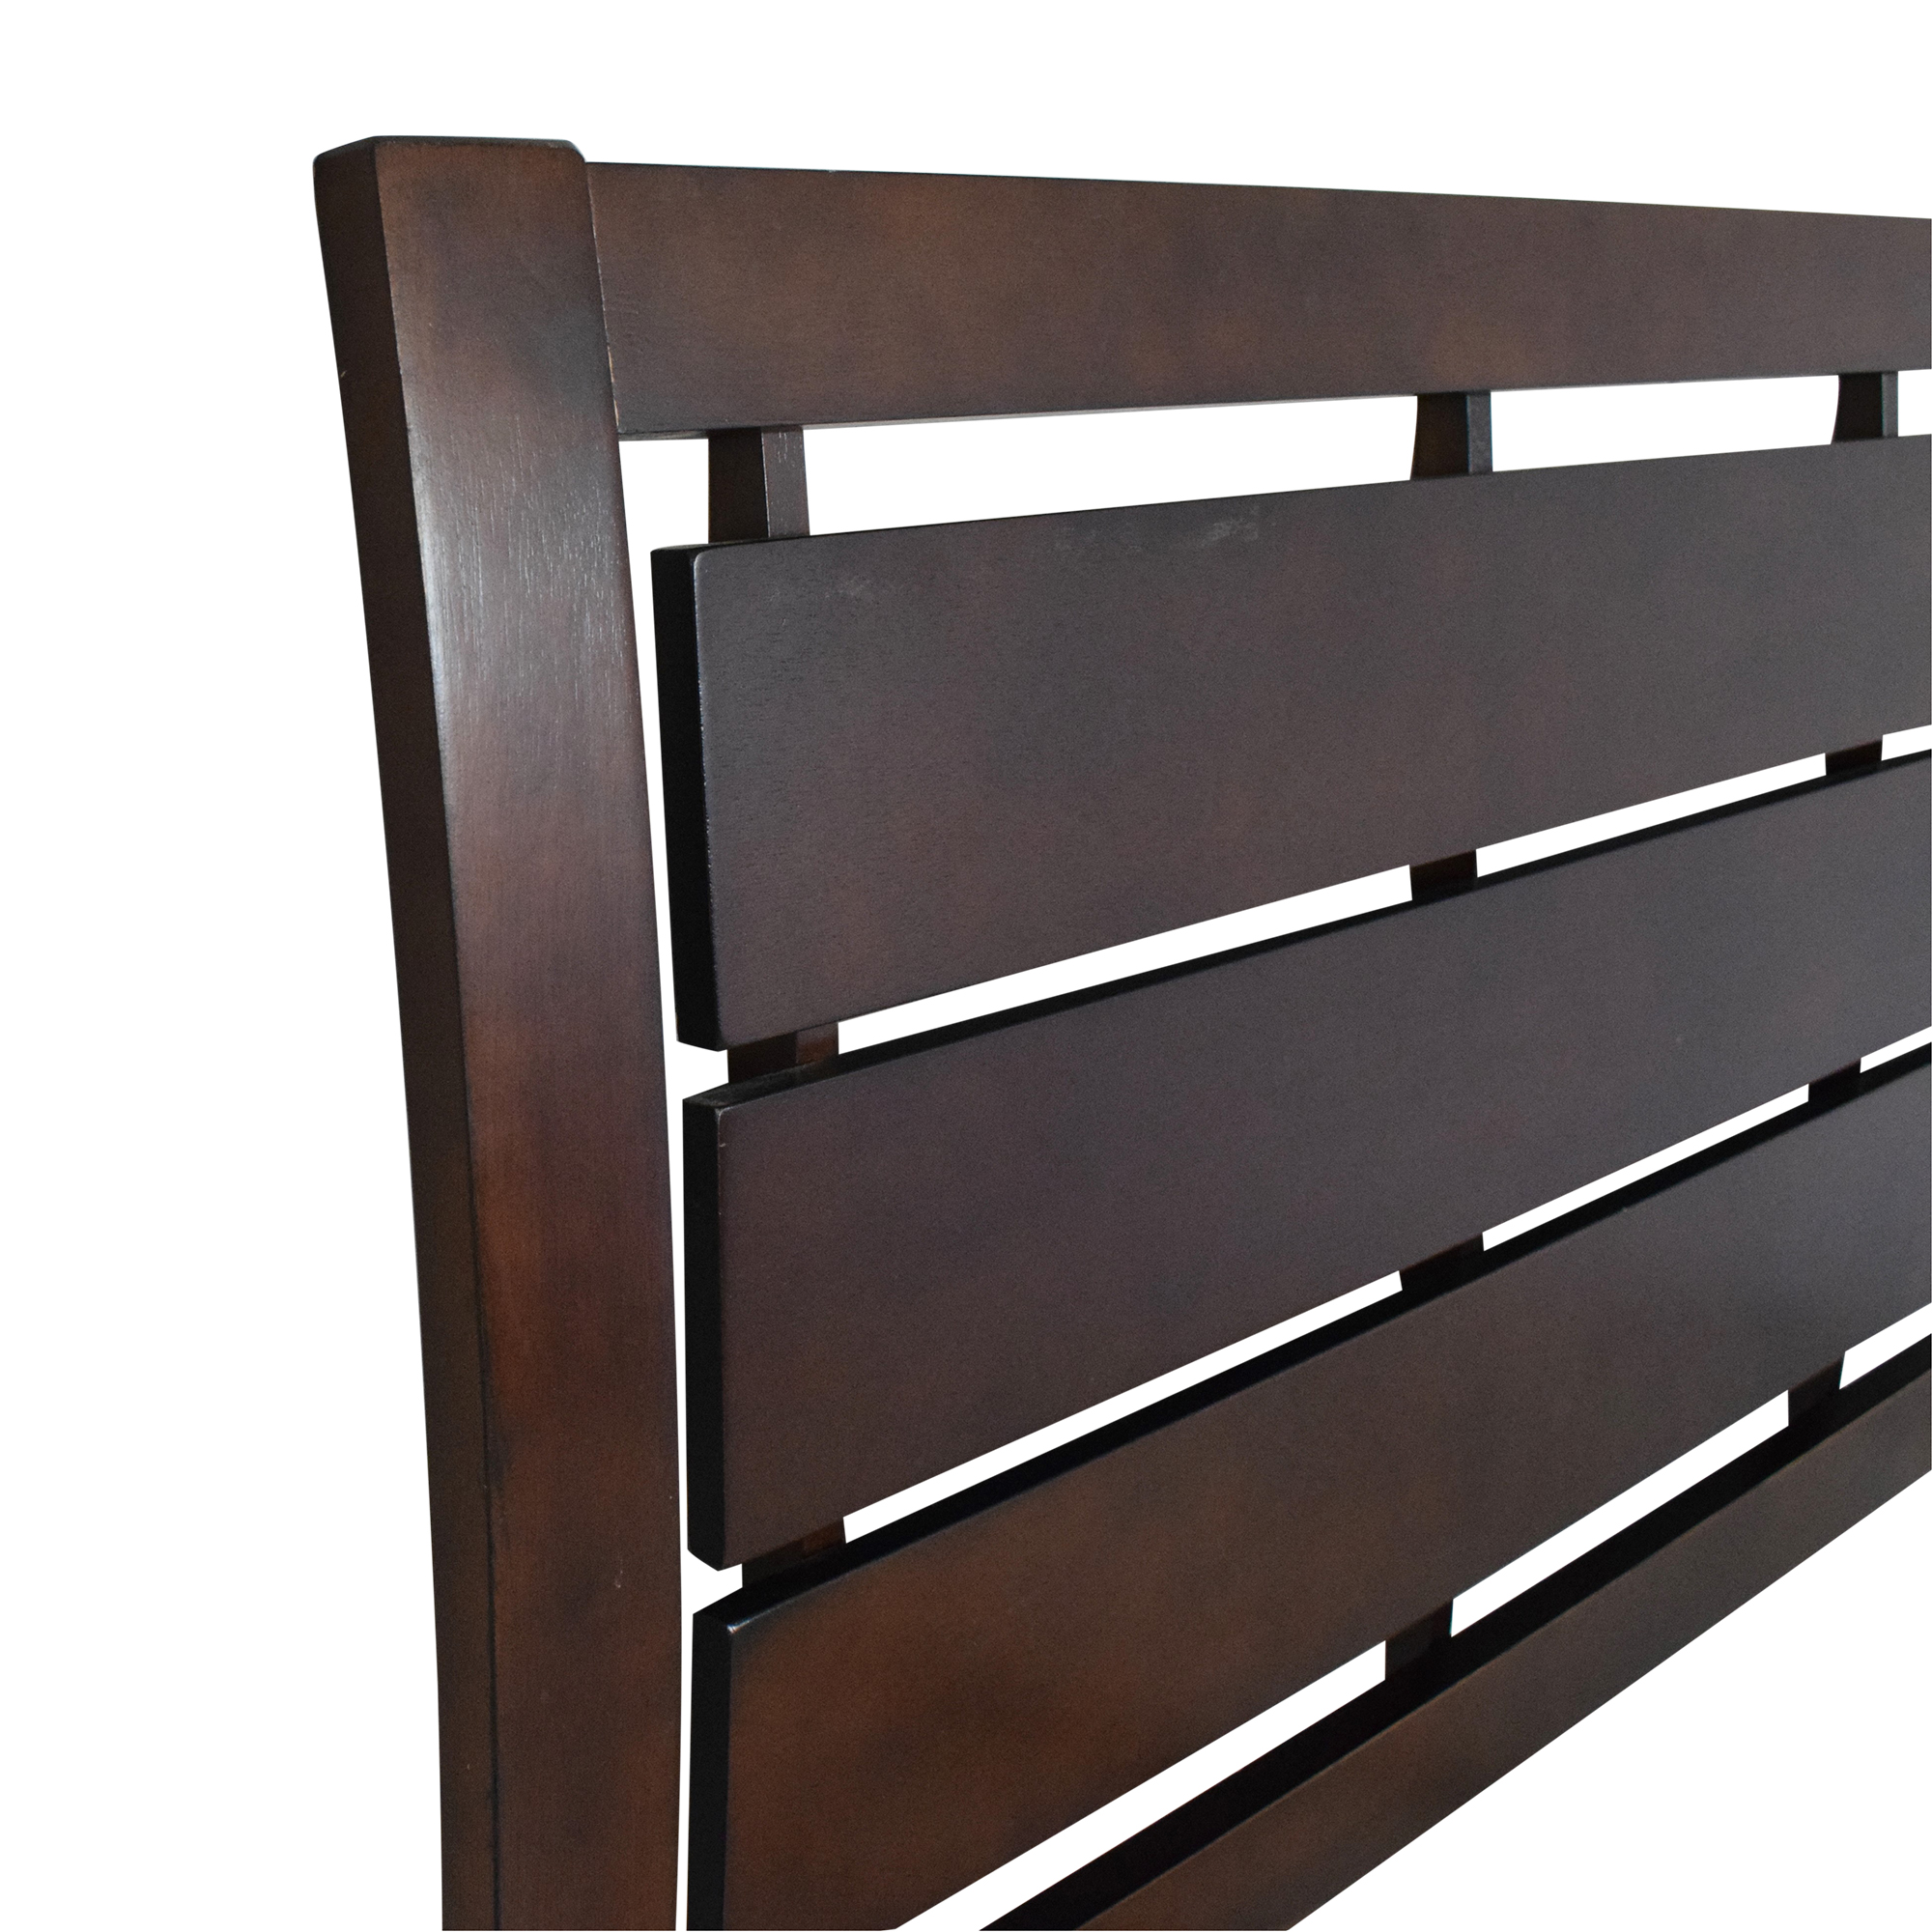 Wayfair Wayfair Full Slat Headboard discount